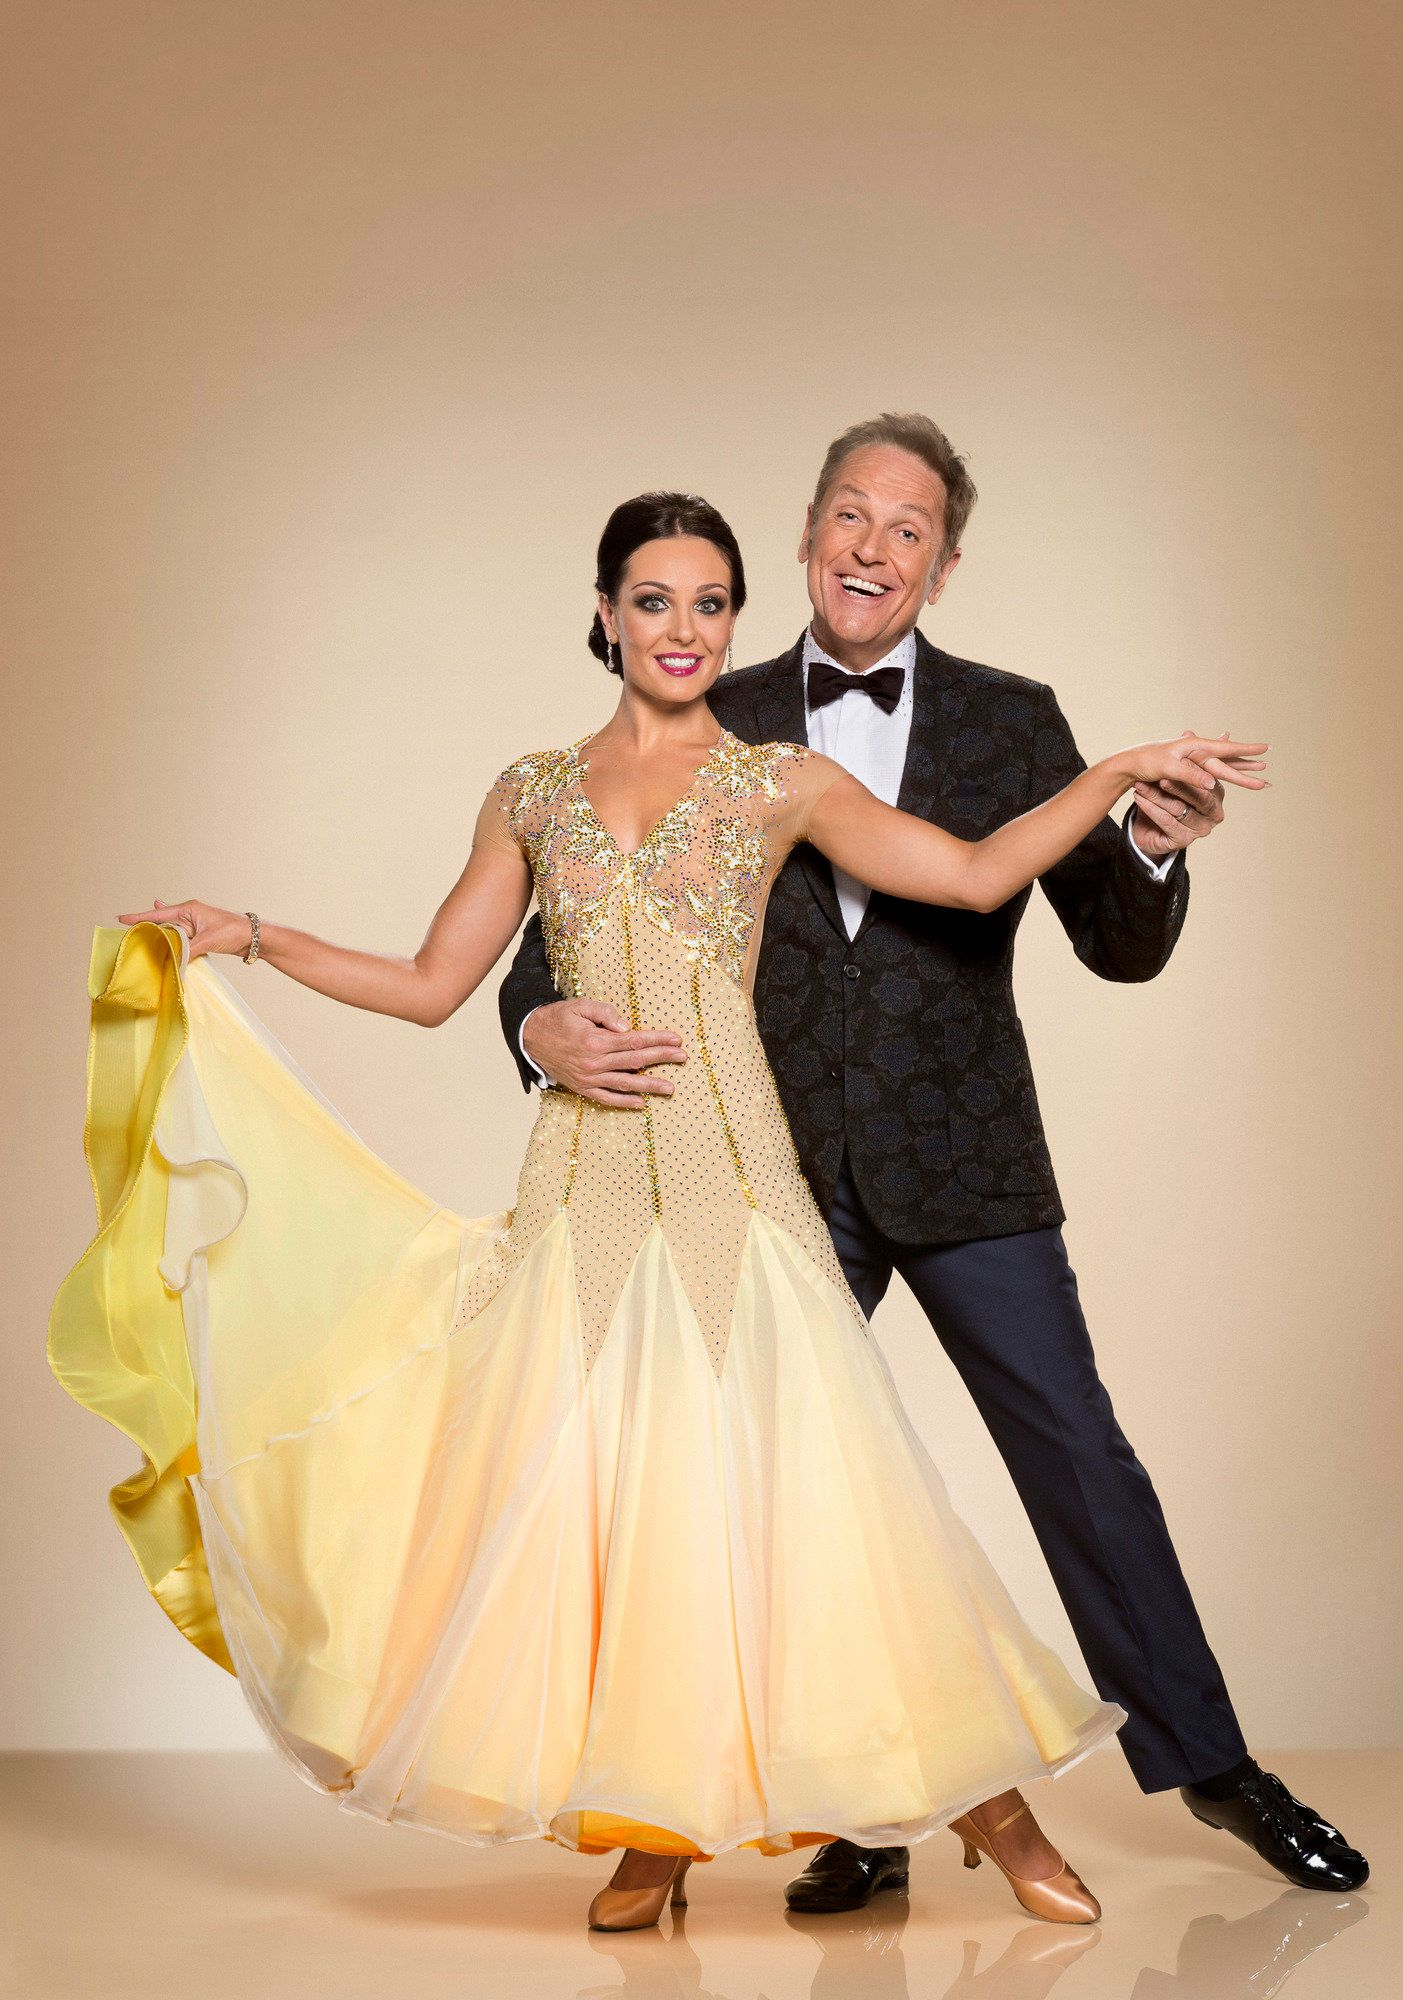 'Strictly' Star Brian Conley Blasts 'Bulls***' Reports About His Future On The